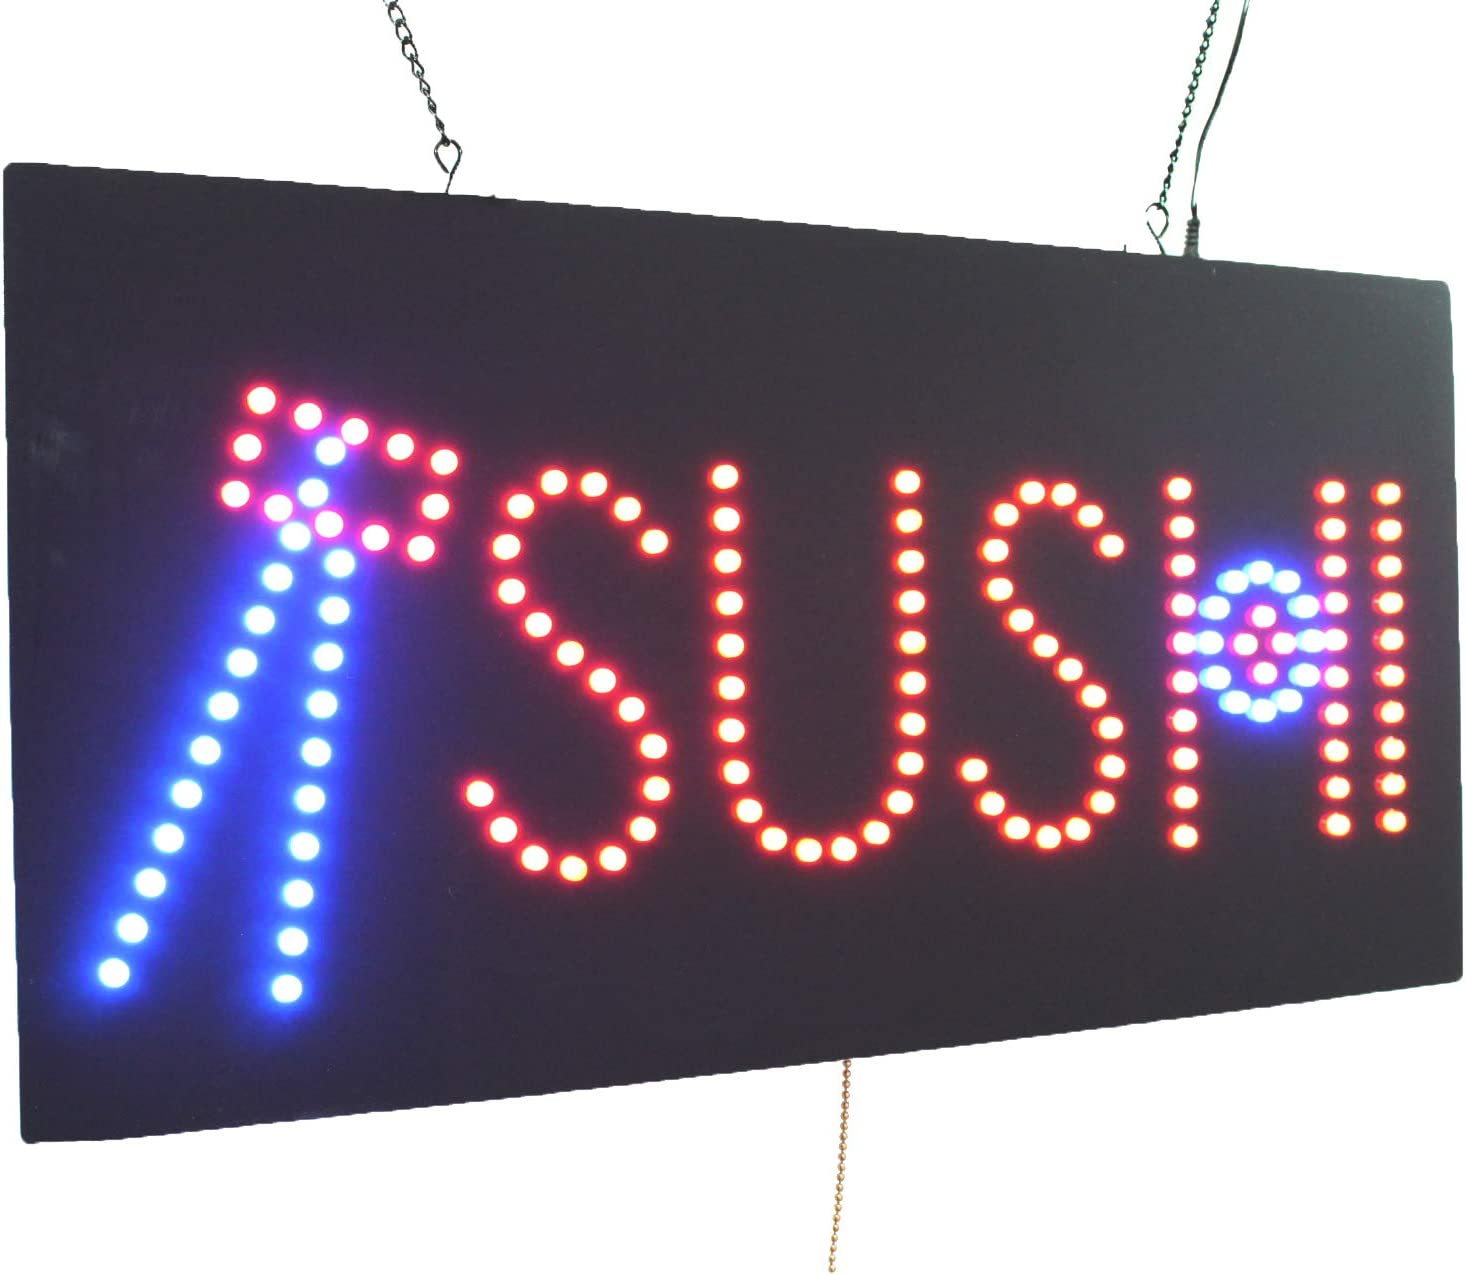 Store Grand Opening Gift Display Business Shop Window TOPKING Signage Sushi Sign LED Neon Open